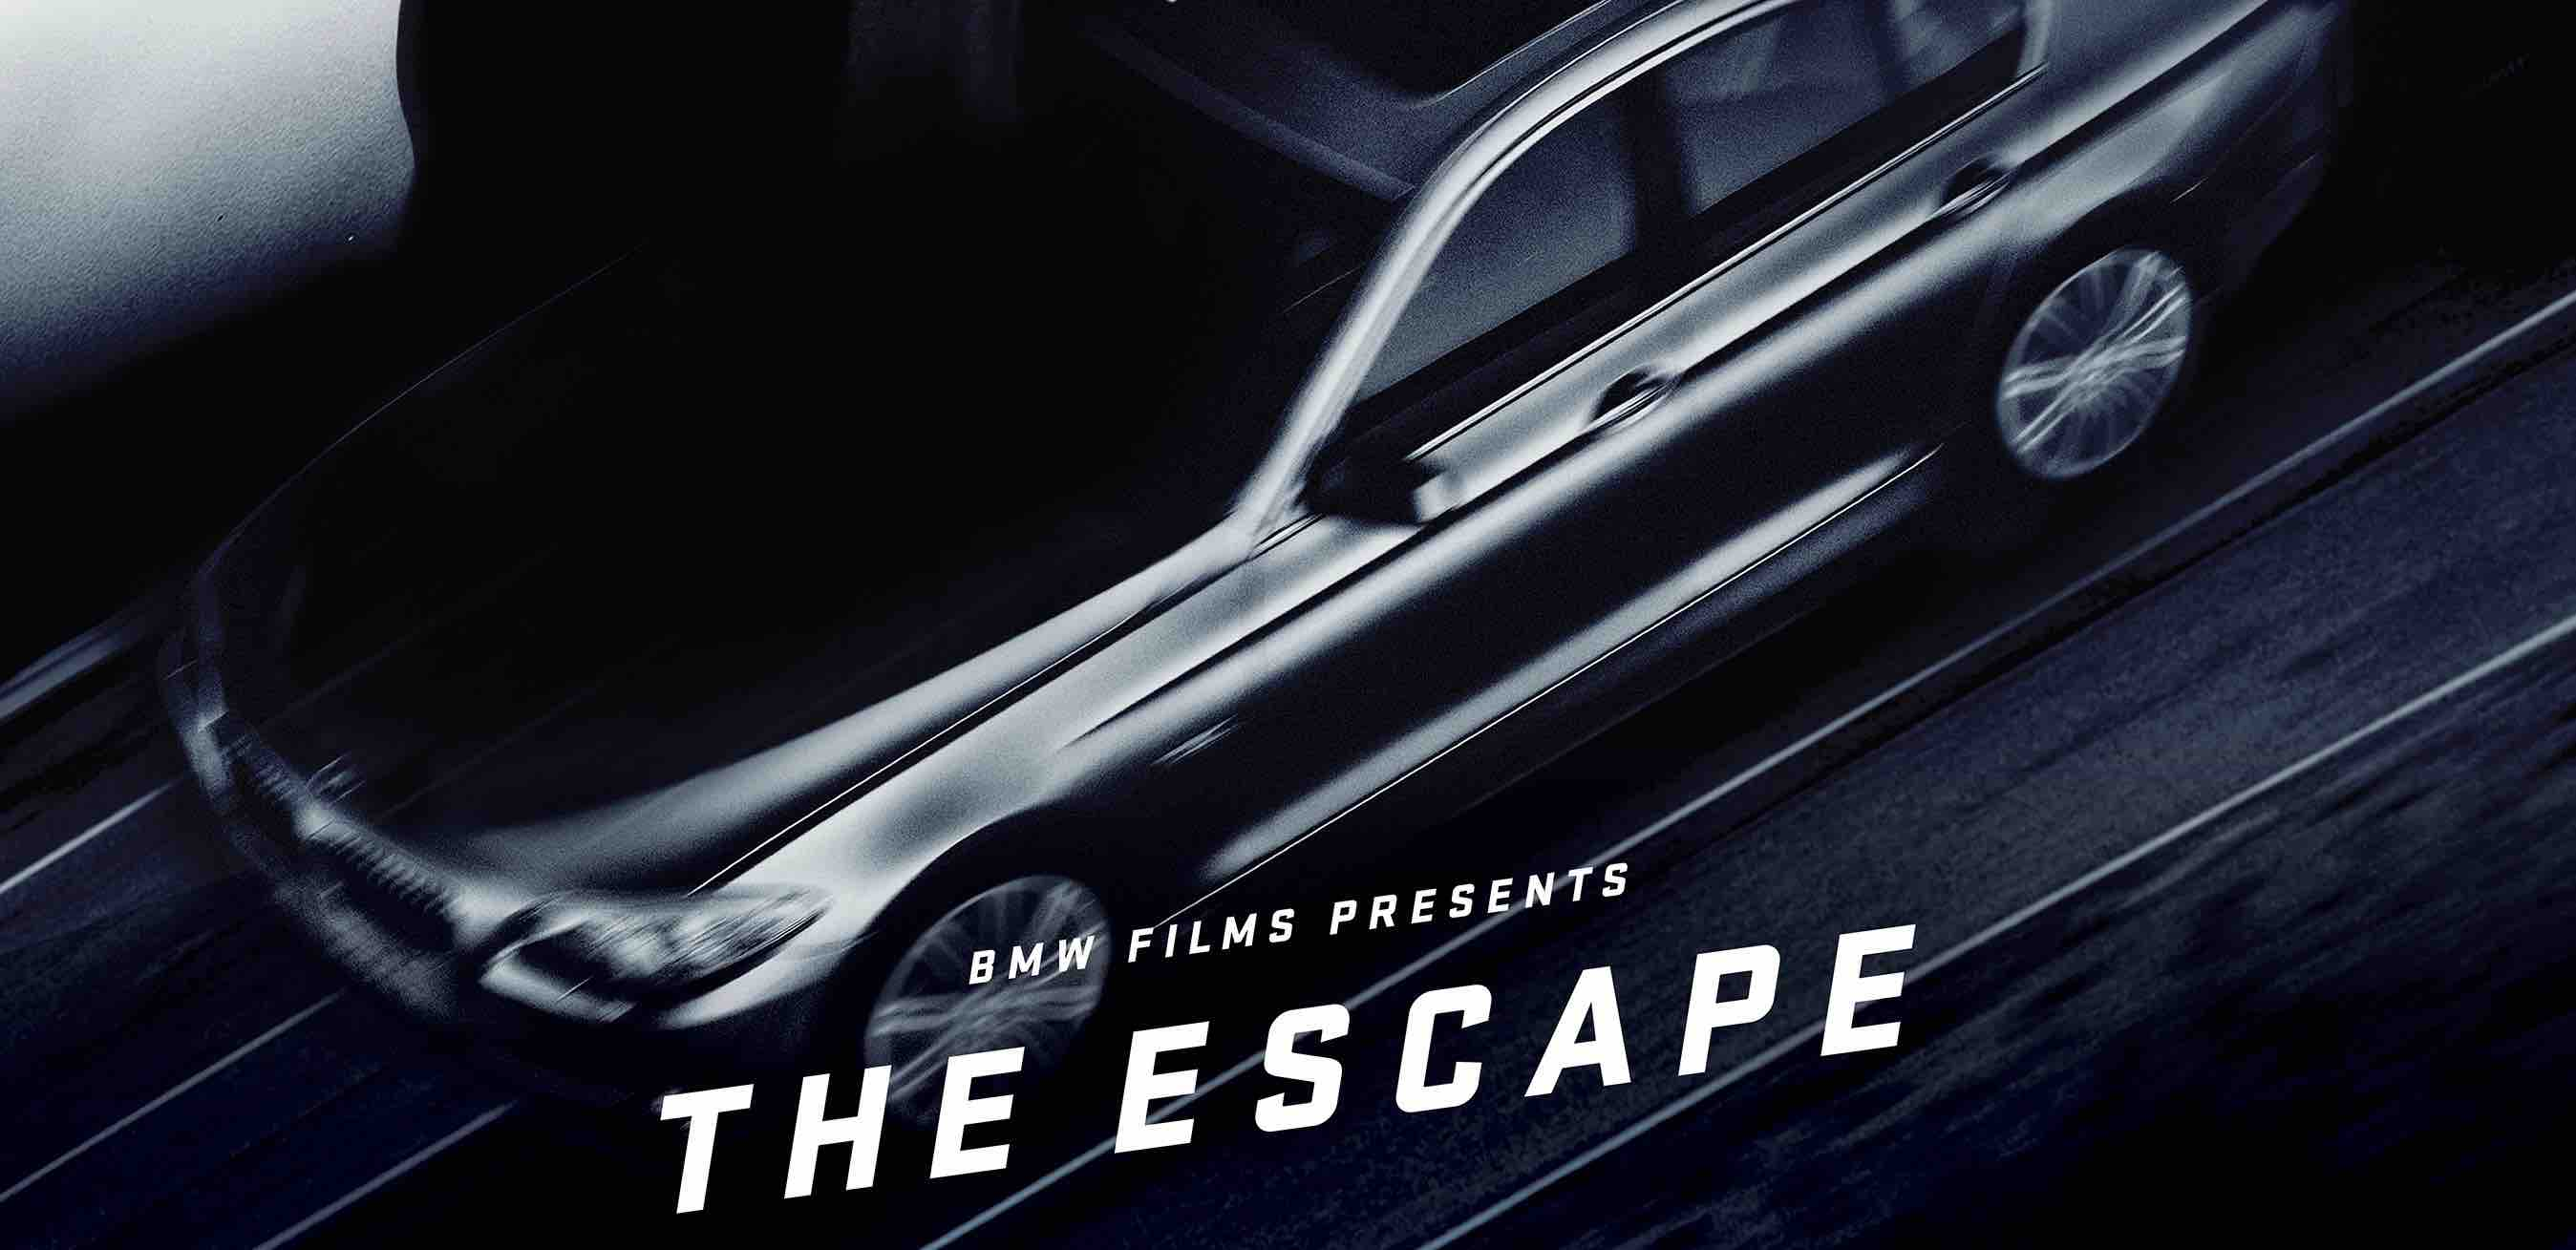 Andrew's Picks: BMW Films' The Escape